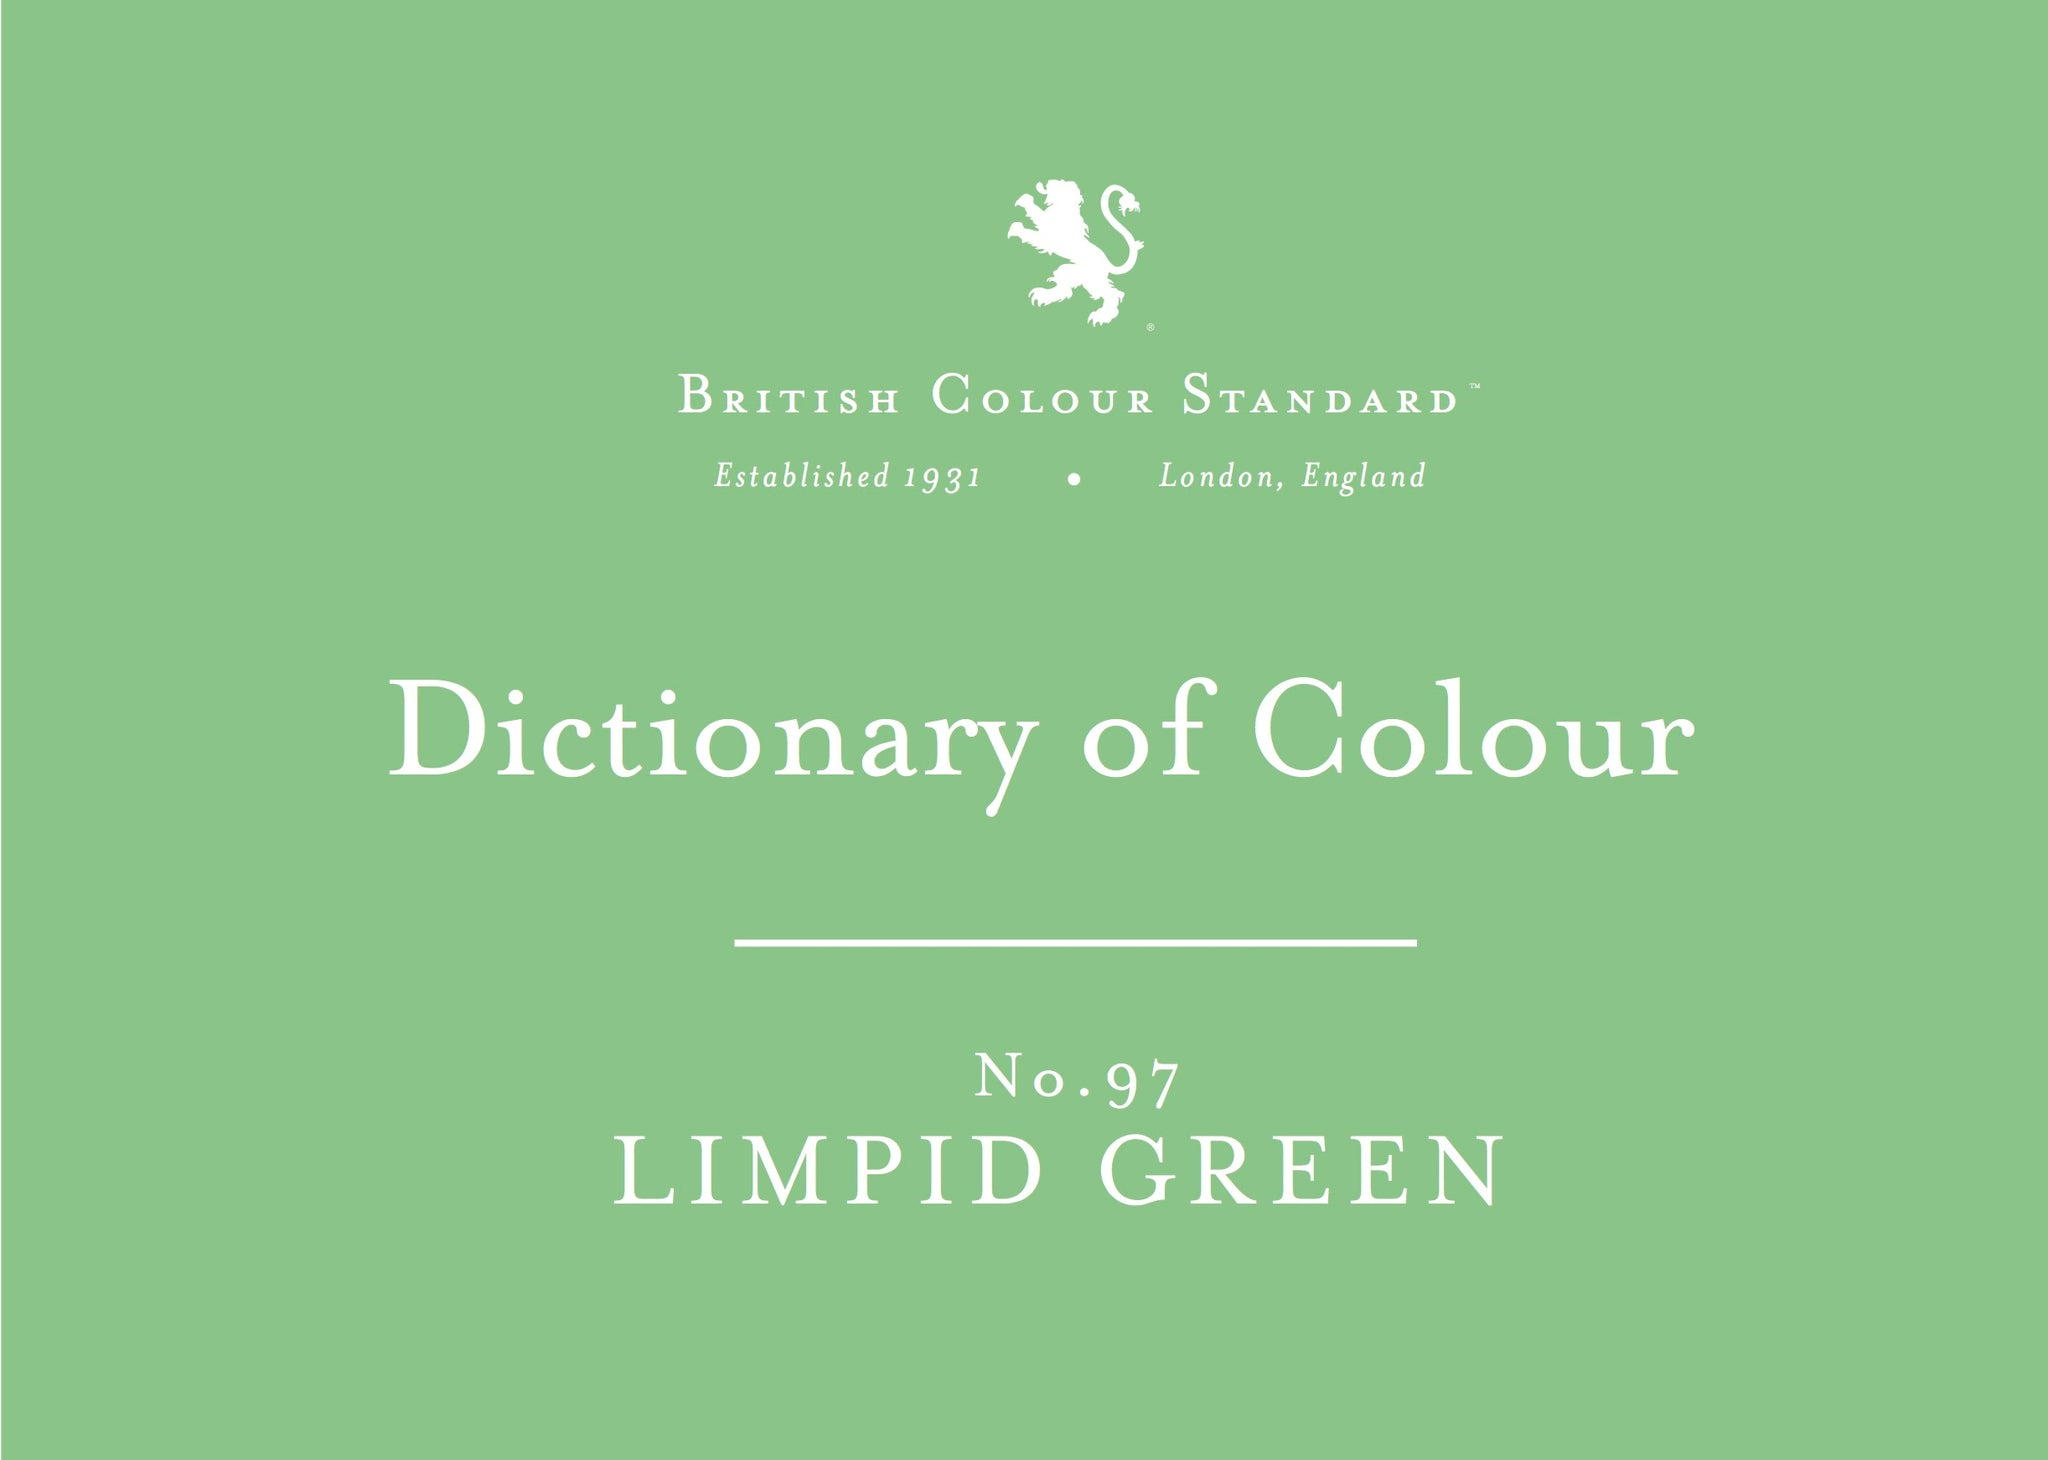 BRITISH COLOUR STANDARD - Limpid Green No. 97